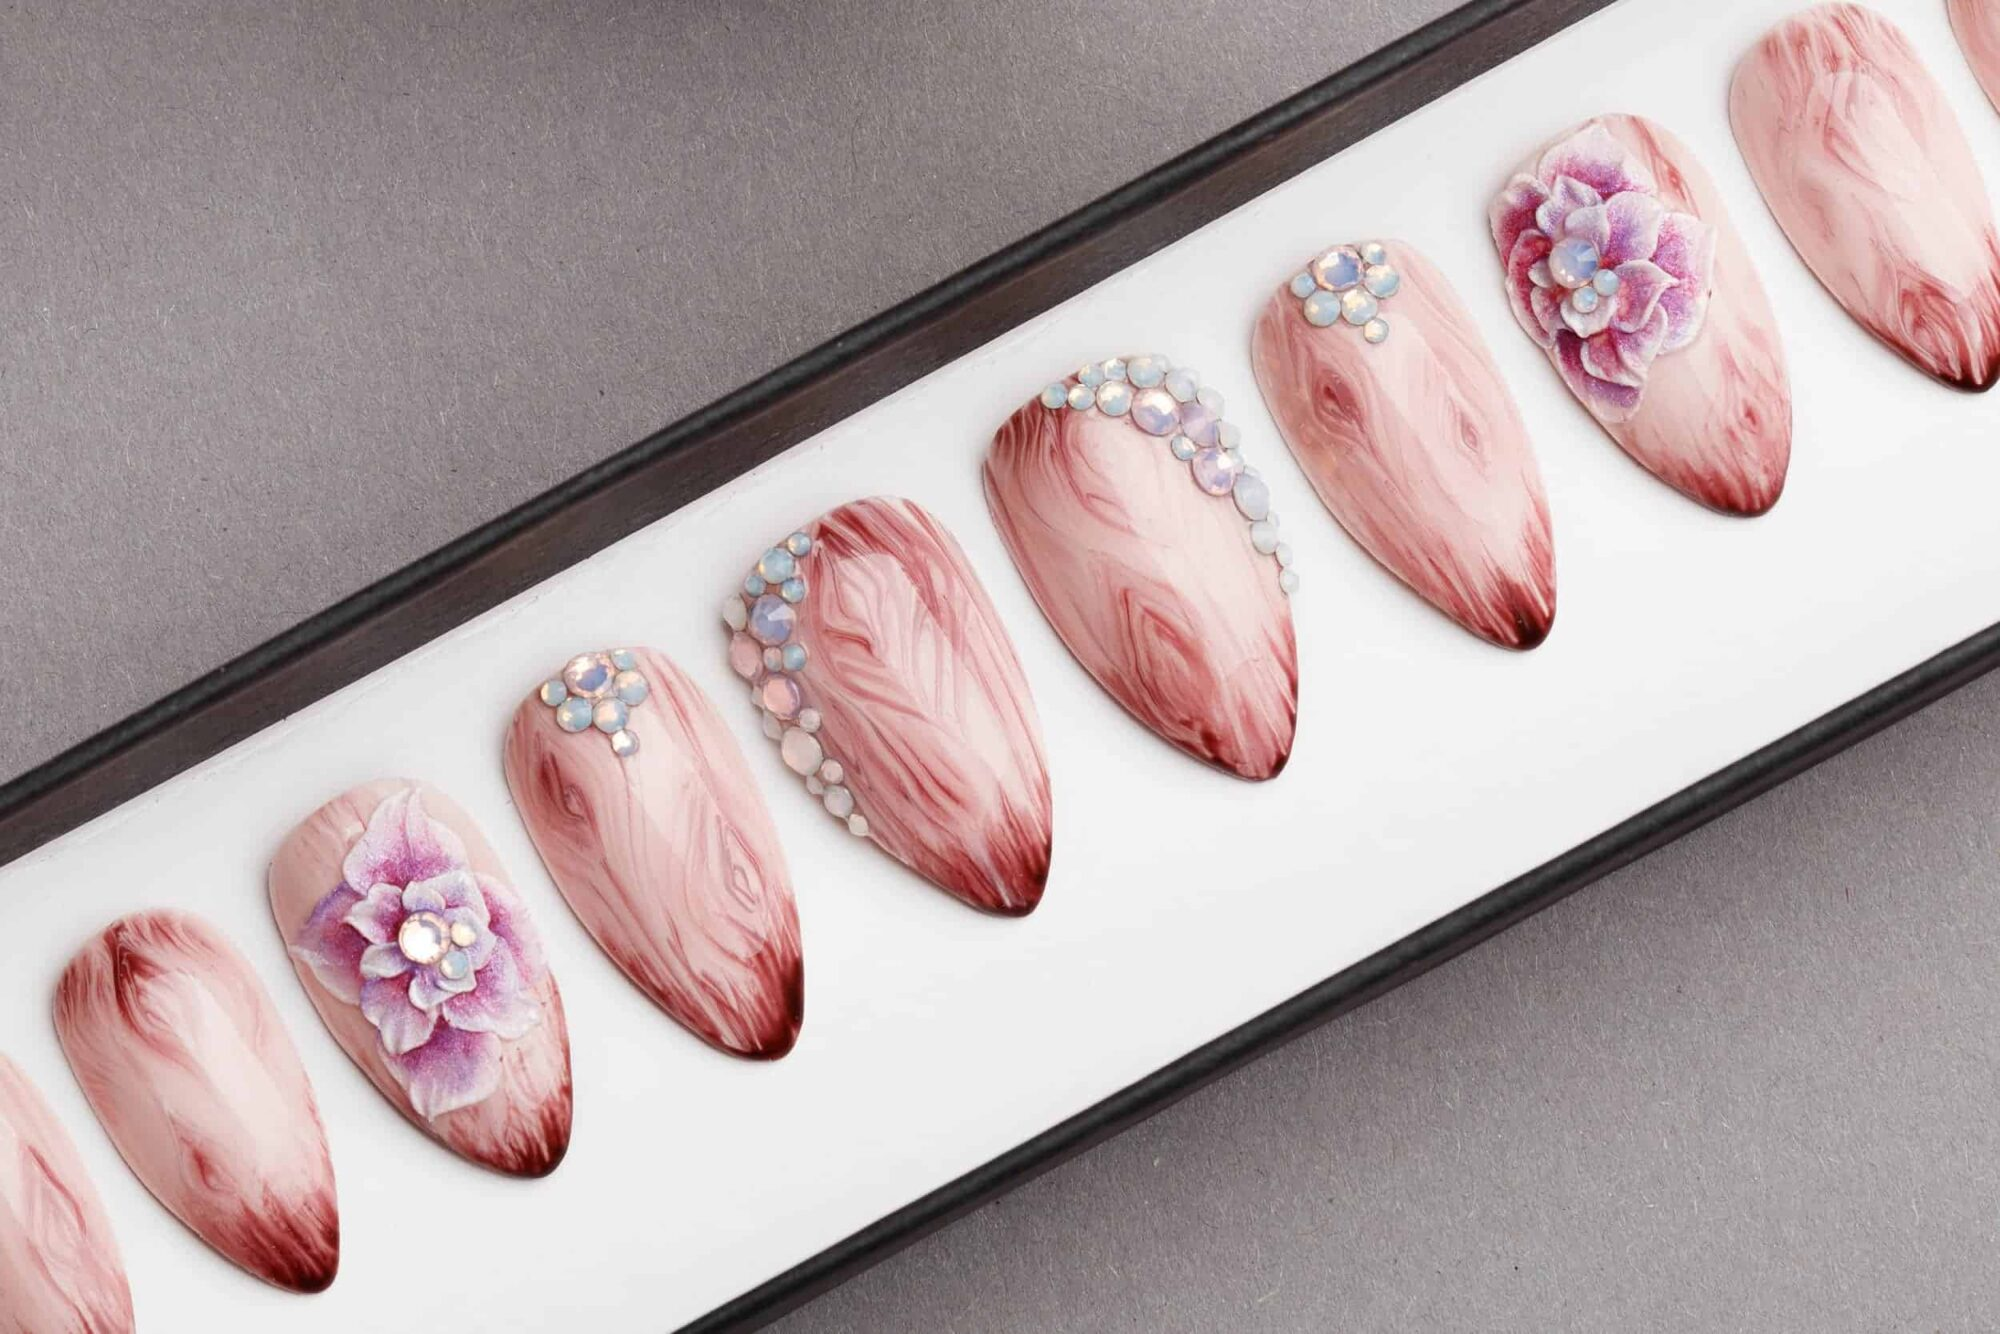 Beige Press on Nails with Wooden Texture and Handmade 3D flowers | Swarovski Crystals | Hand painted Nail Art | Fake Nails | False Nails